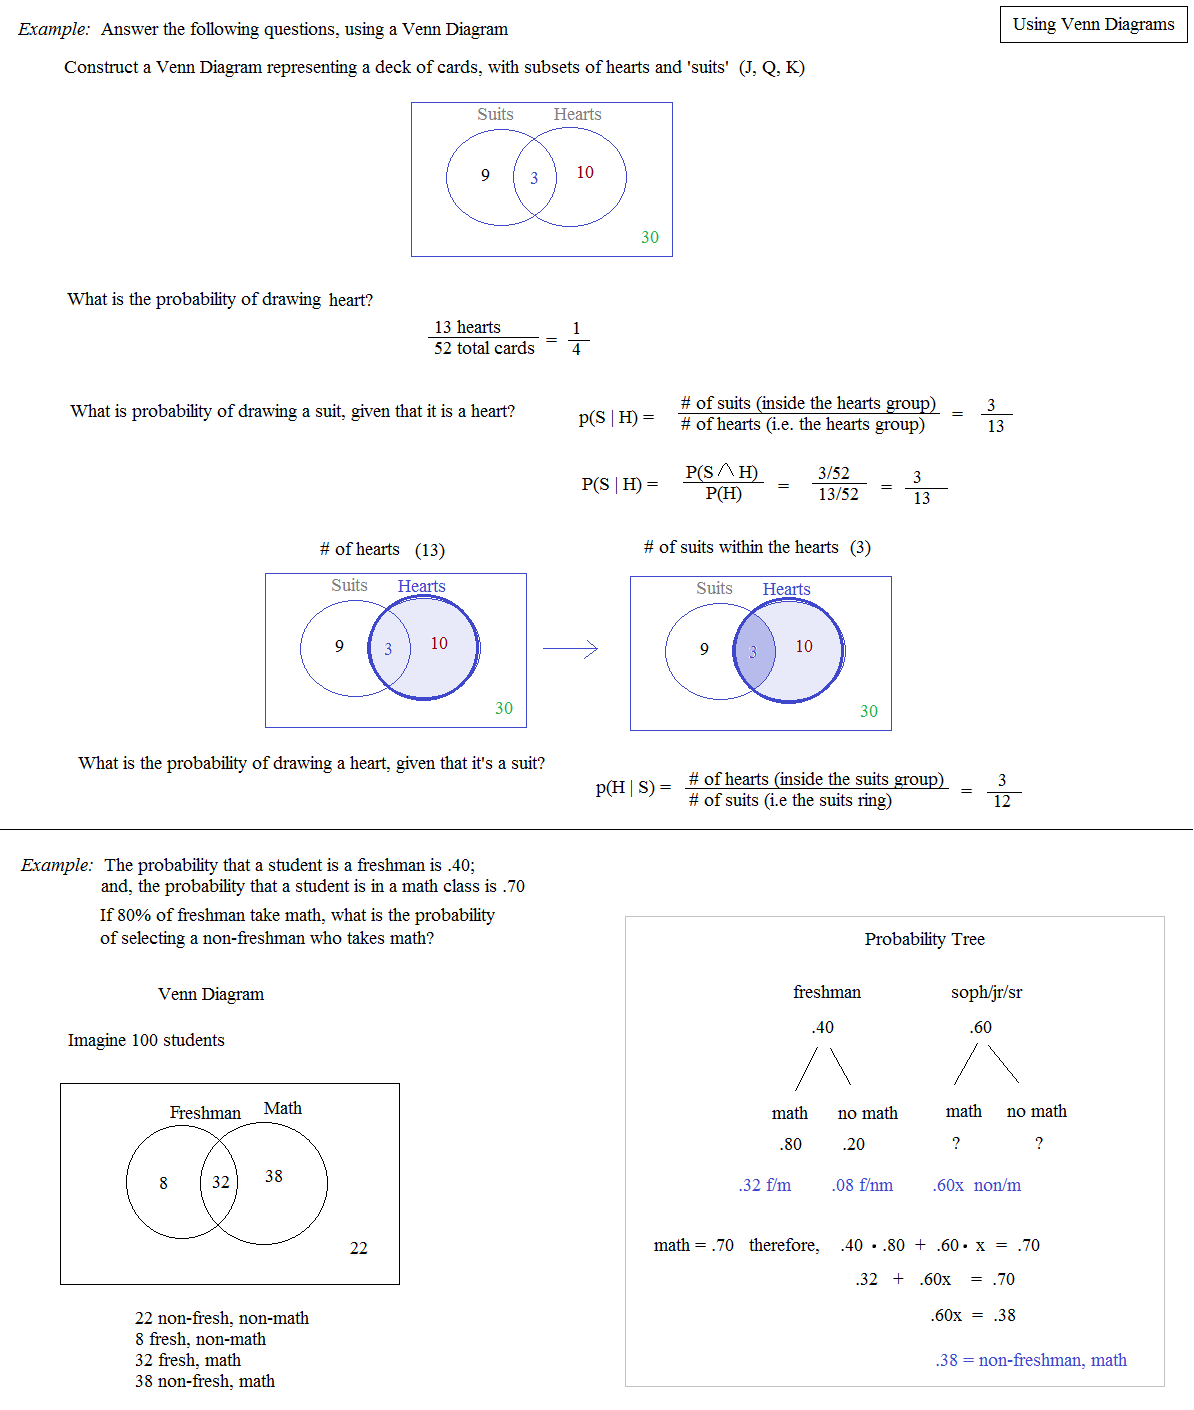 Math plane venn diagrams using venn diagrams 1 using venn diagrams 2 pooptronica Gallery